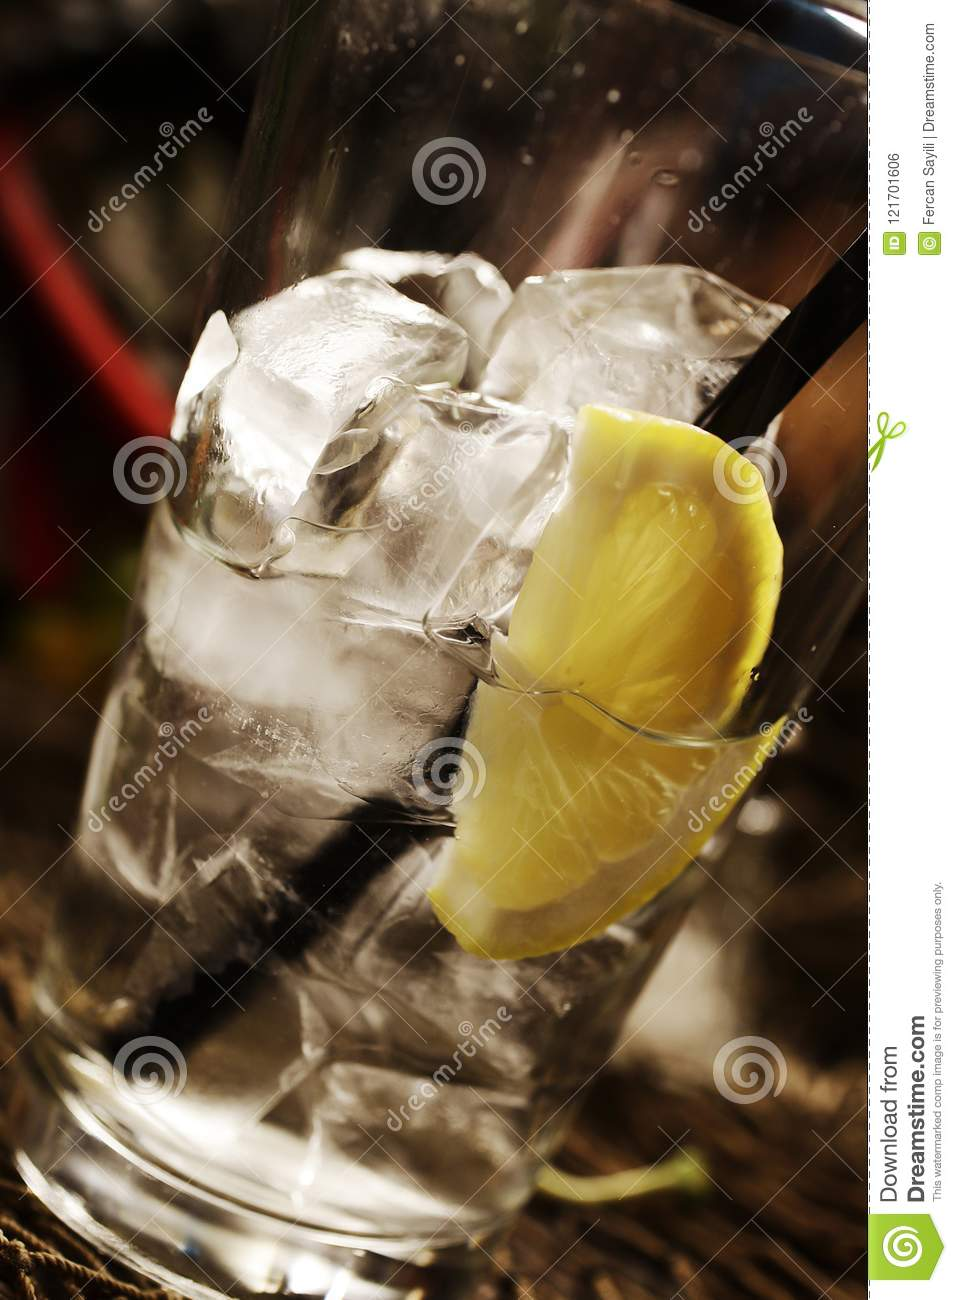 Lemon Soda In The Glass With Ice Stock Photo - Image of